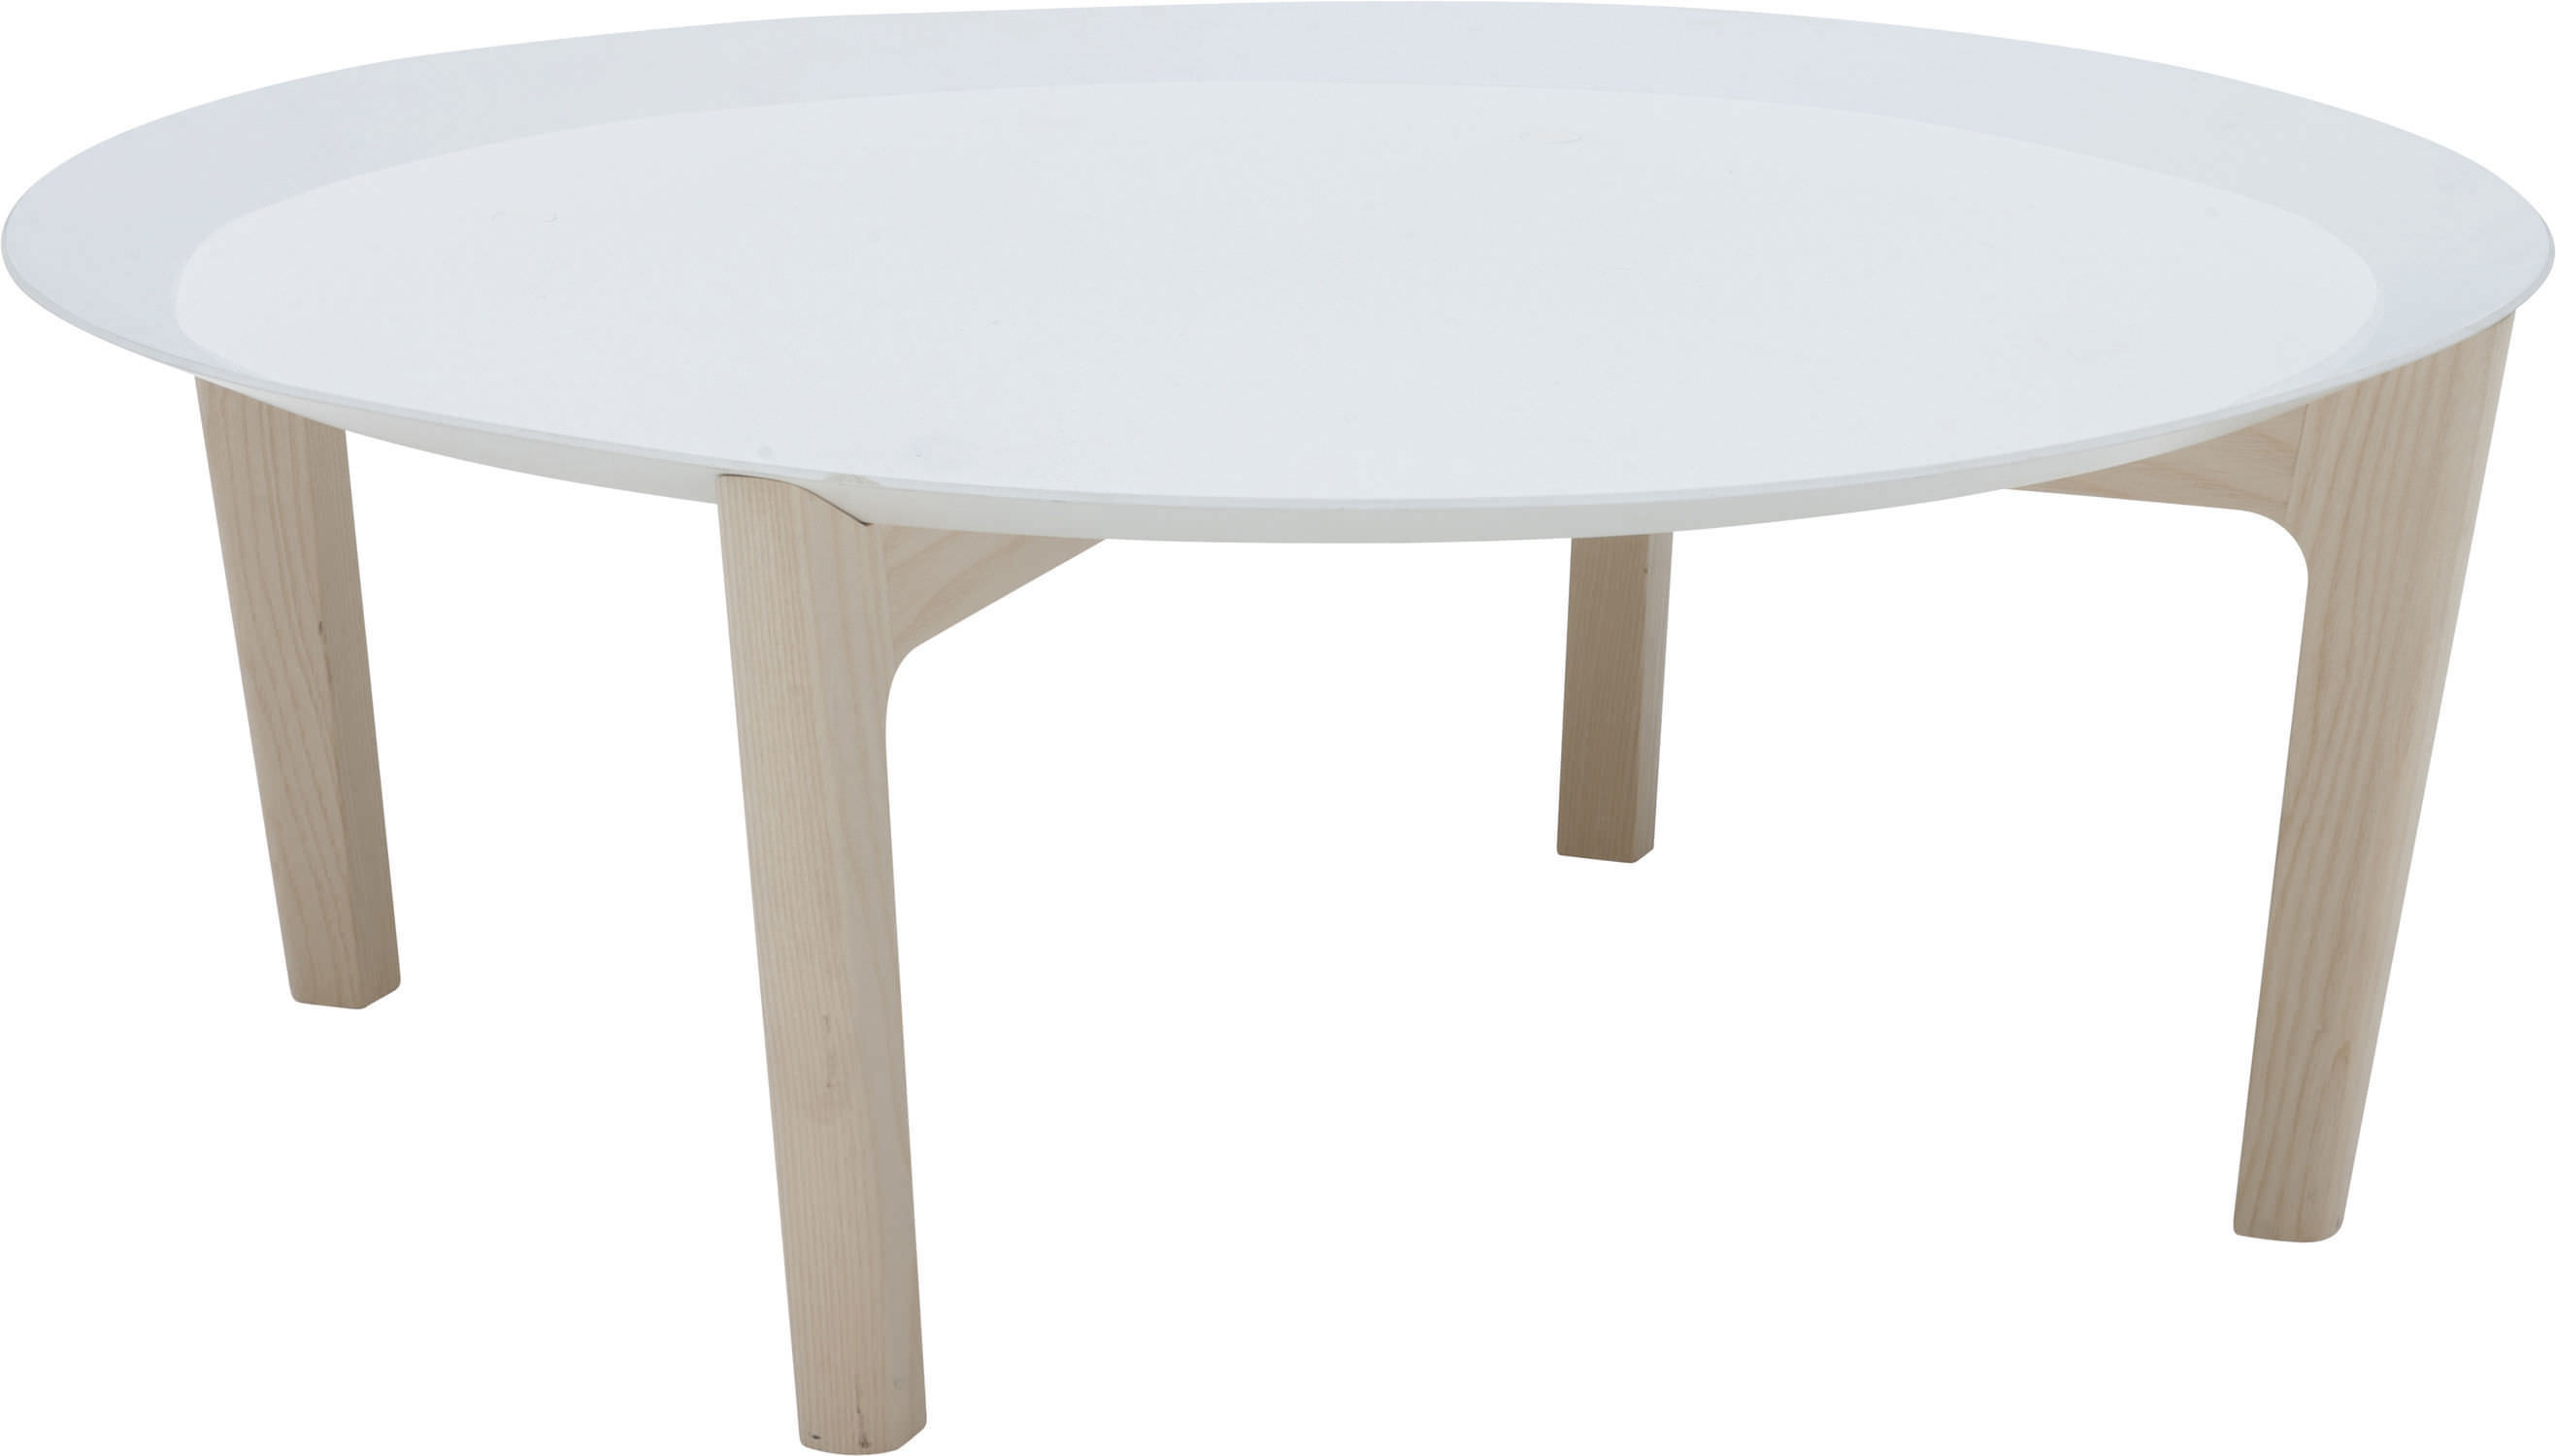 Contemporary coffee table wooden round white TRAY by